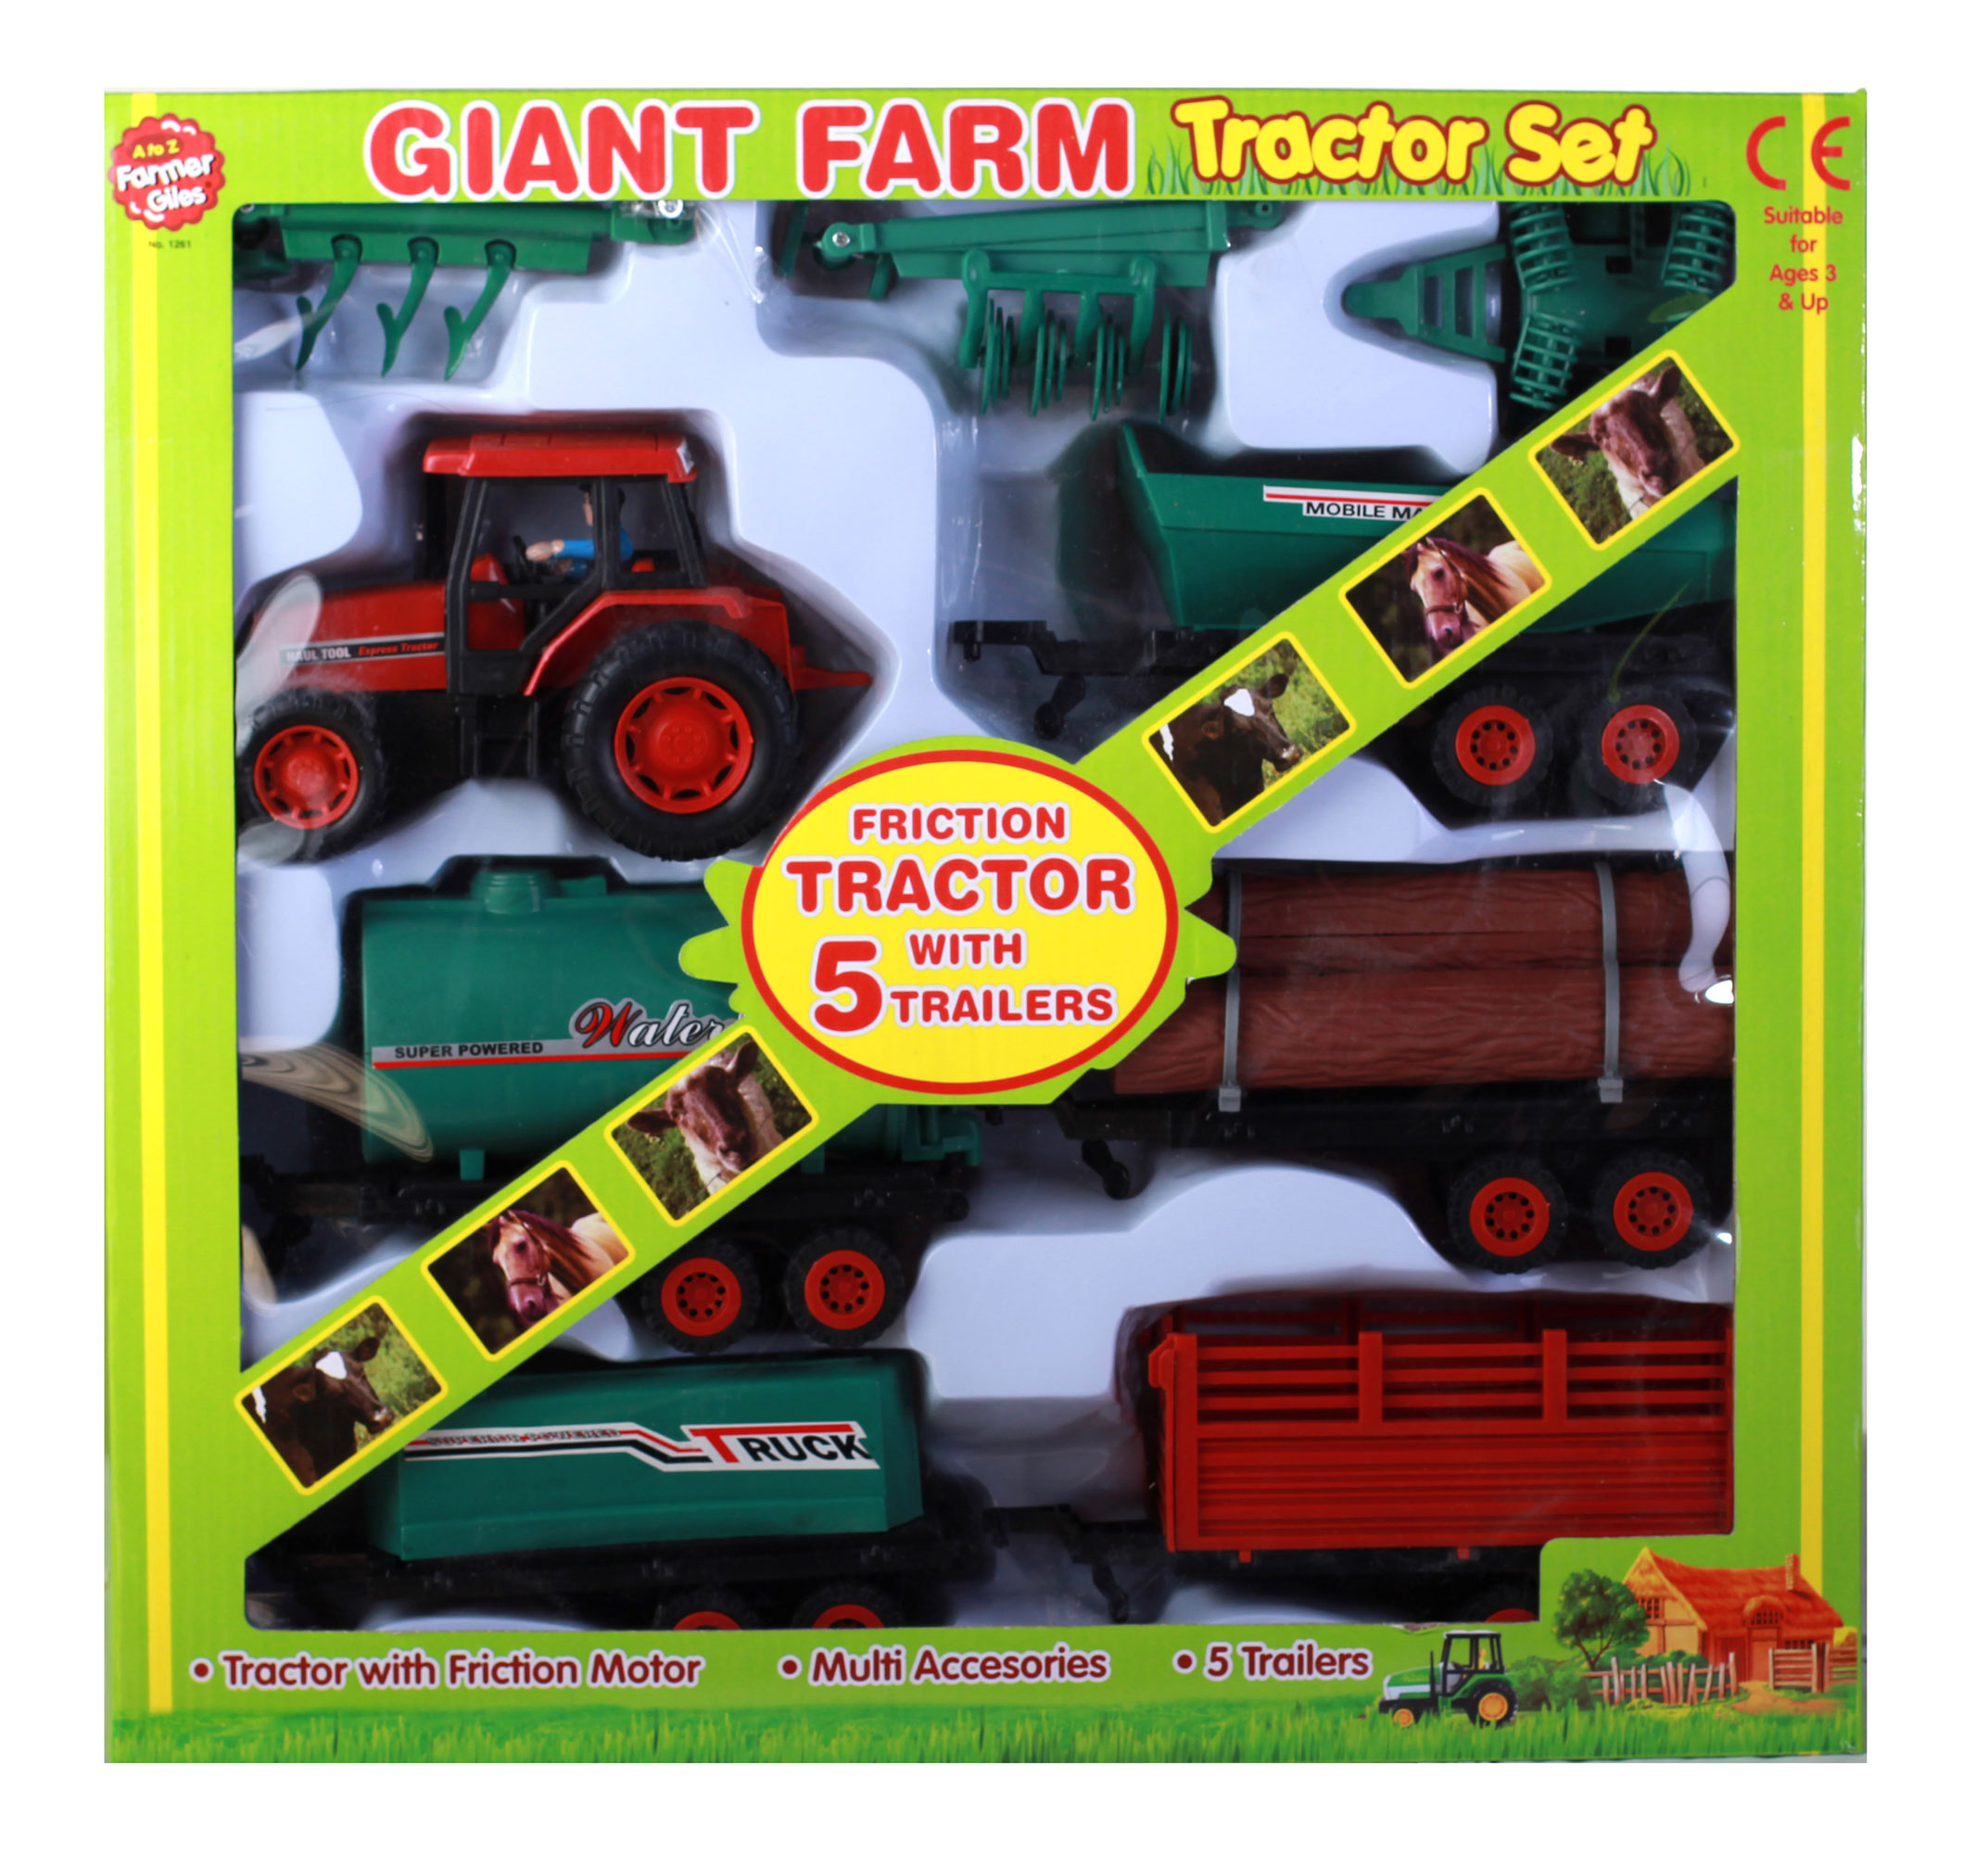 Giant Farm Tractor Set